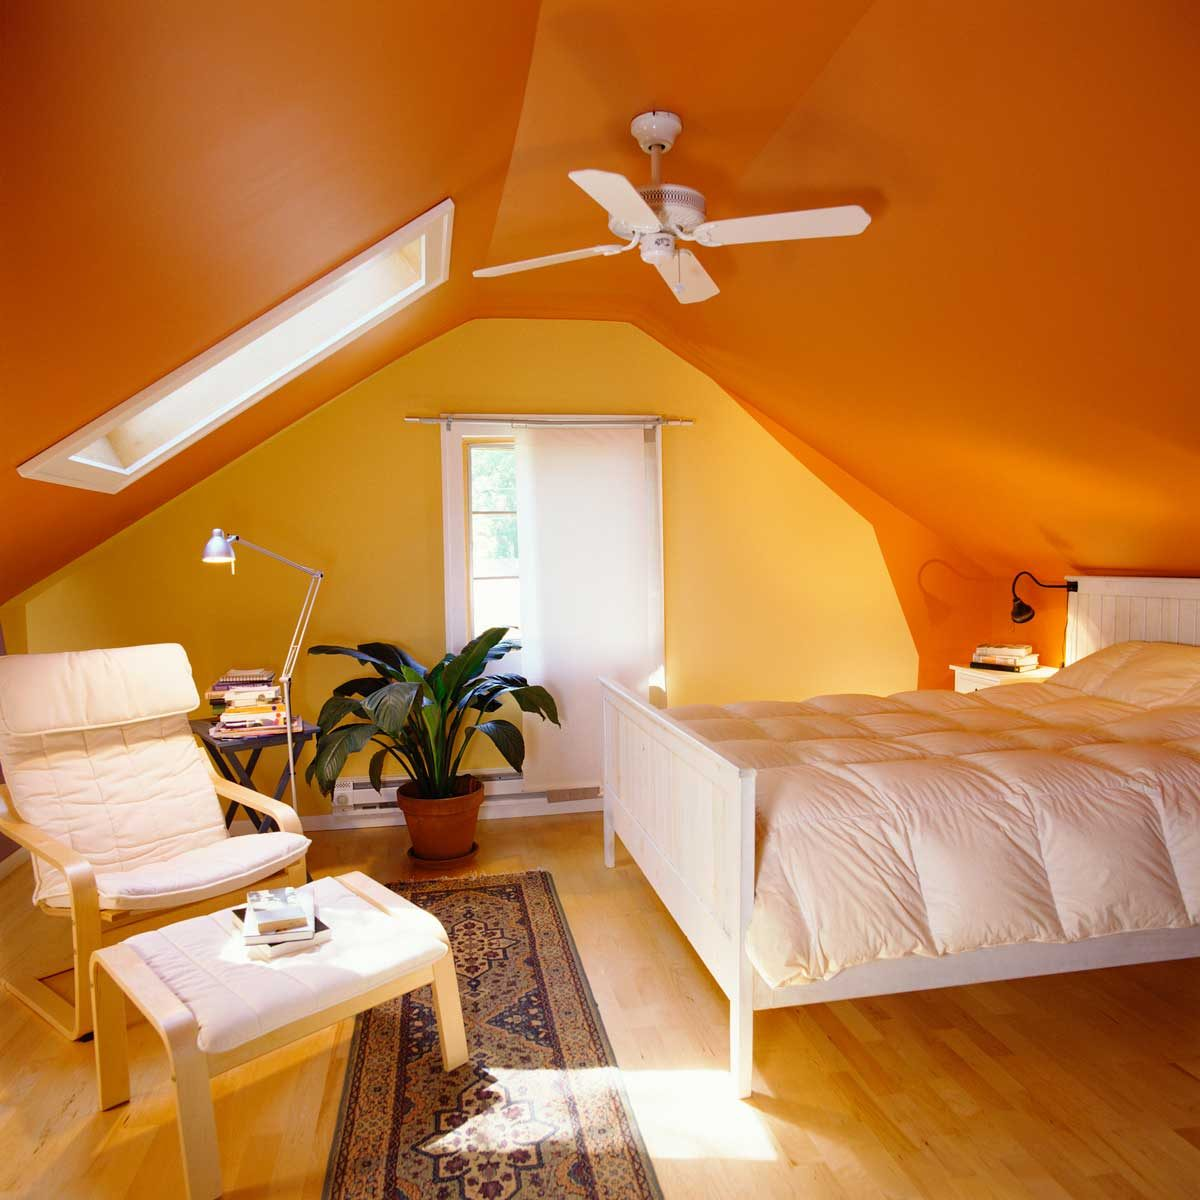 Orange bedroom with a ceiling fan